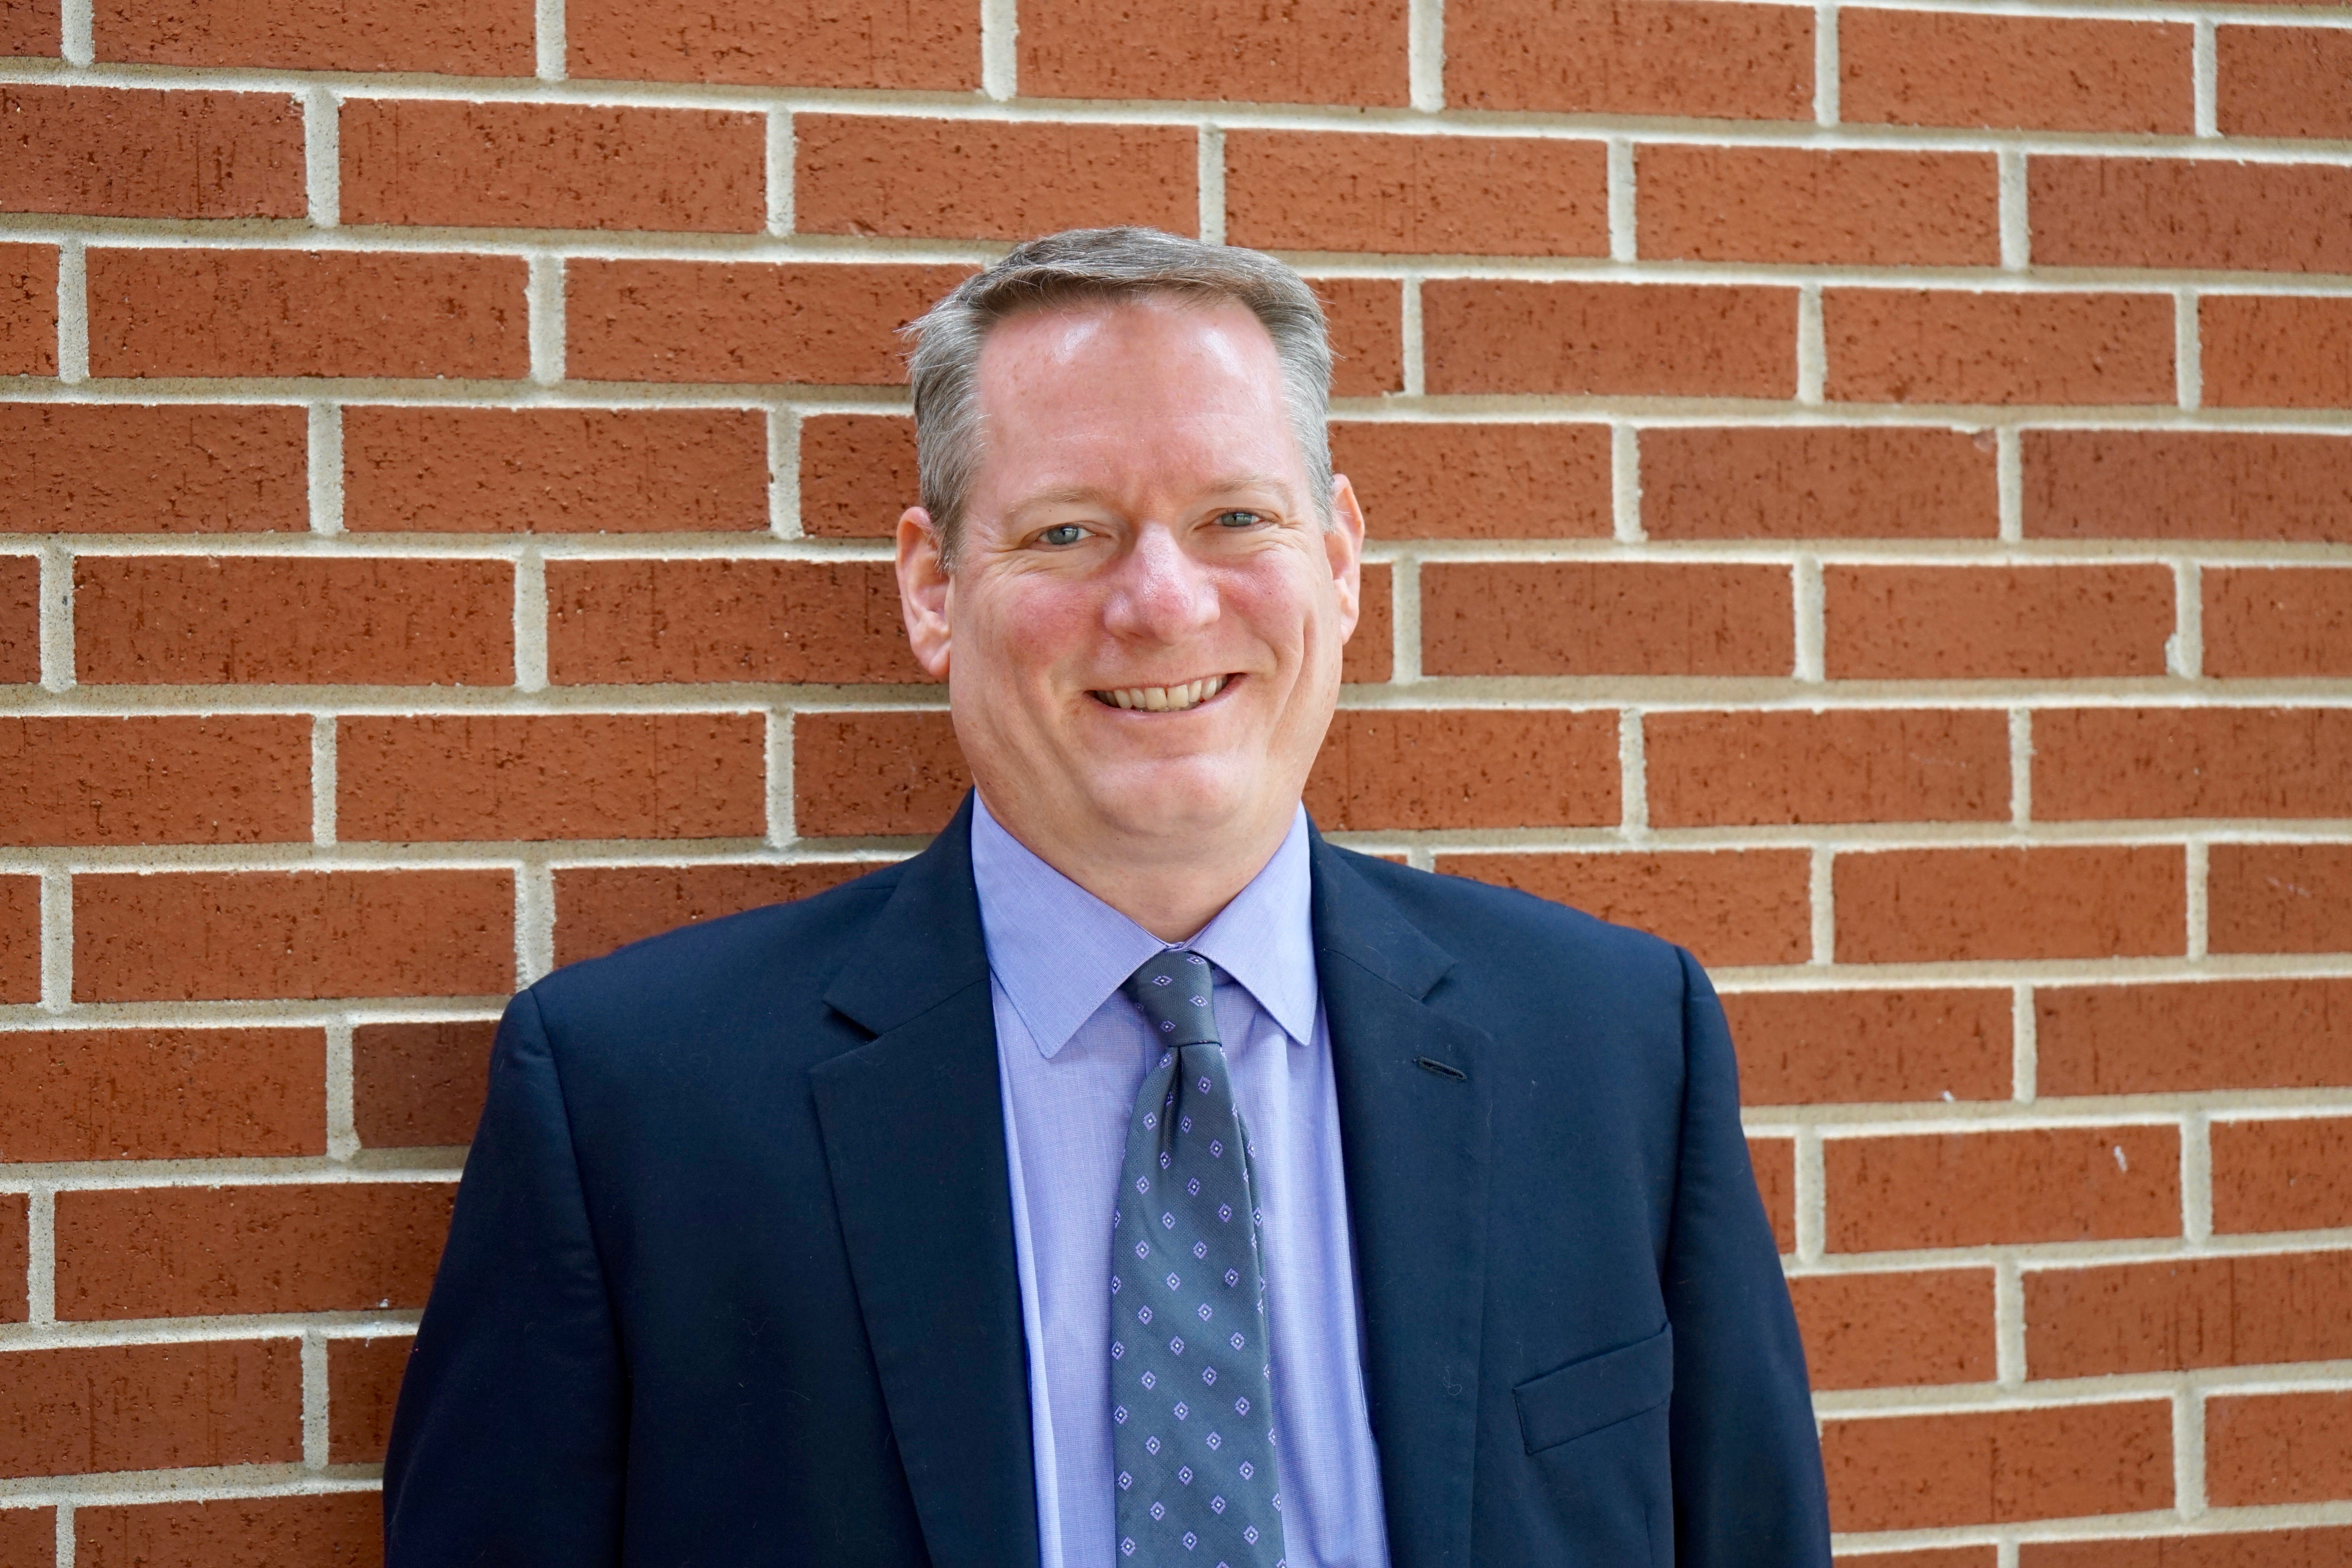 Photo of the Superintendent of Schools, Dr. Rick Cobb